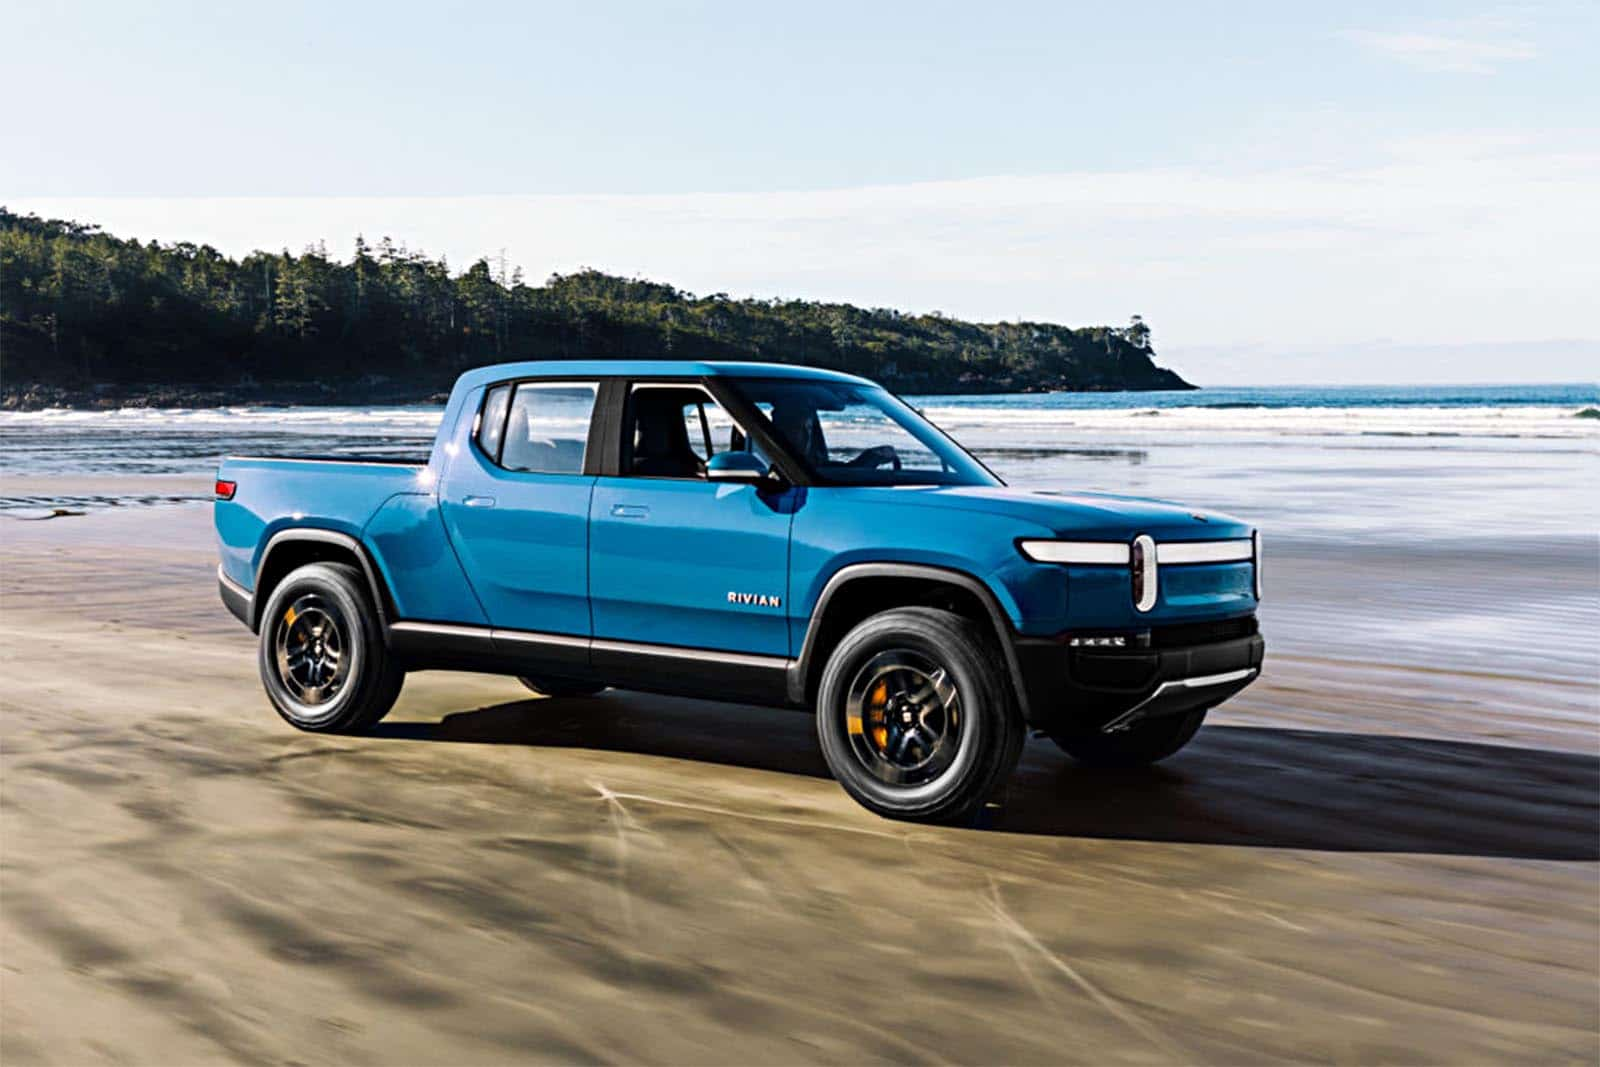 Rivian Confirms Pricing, Launch Timing